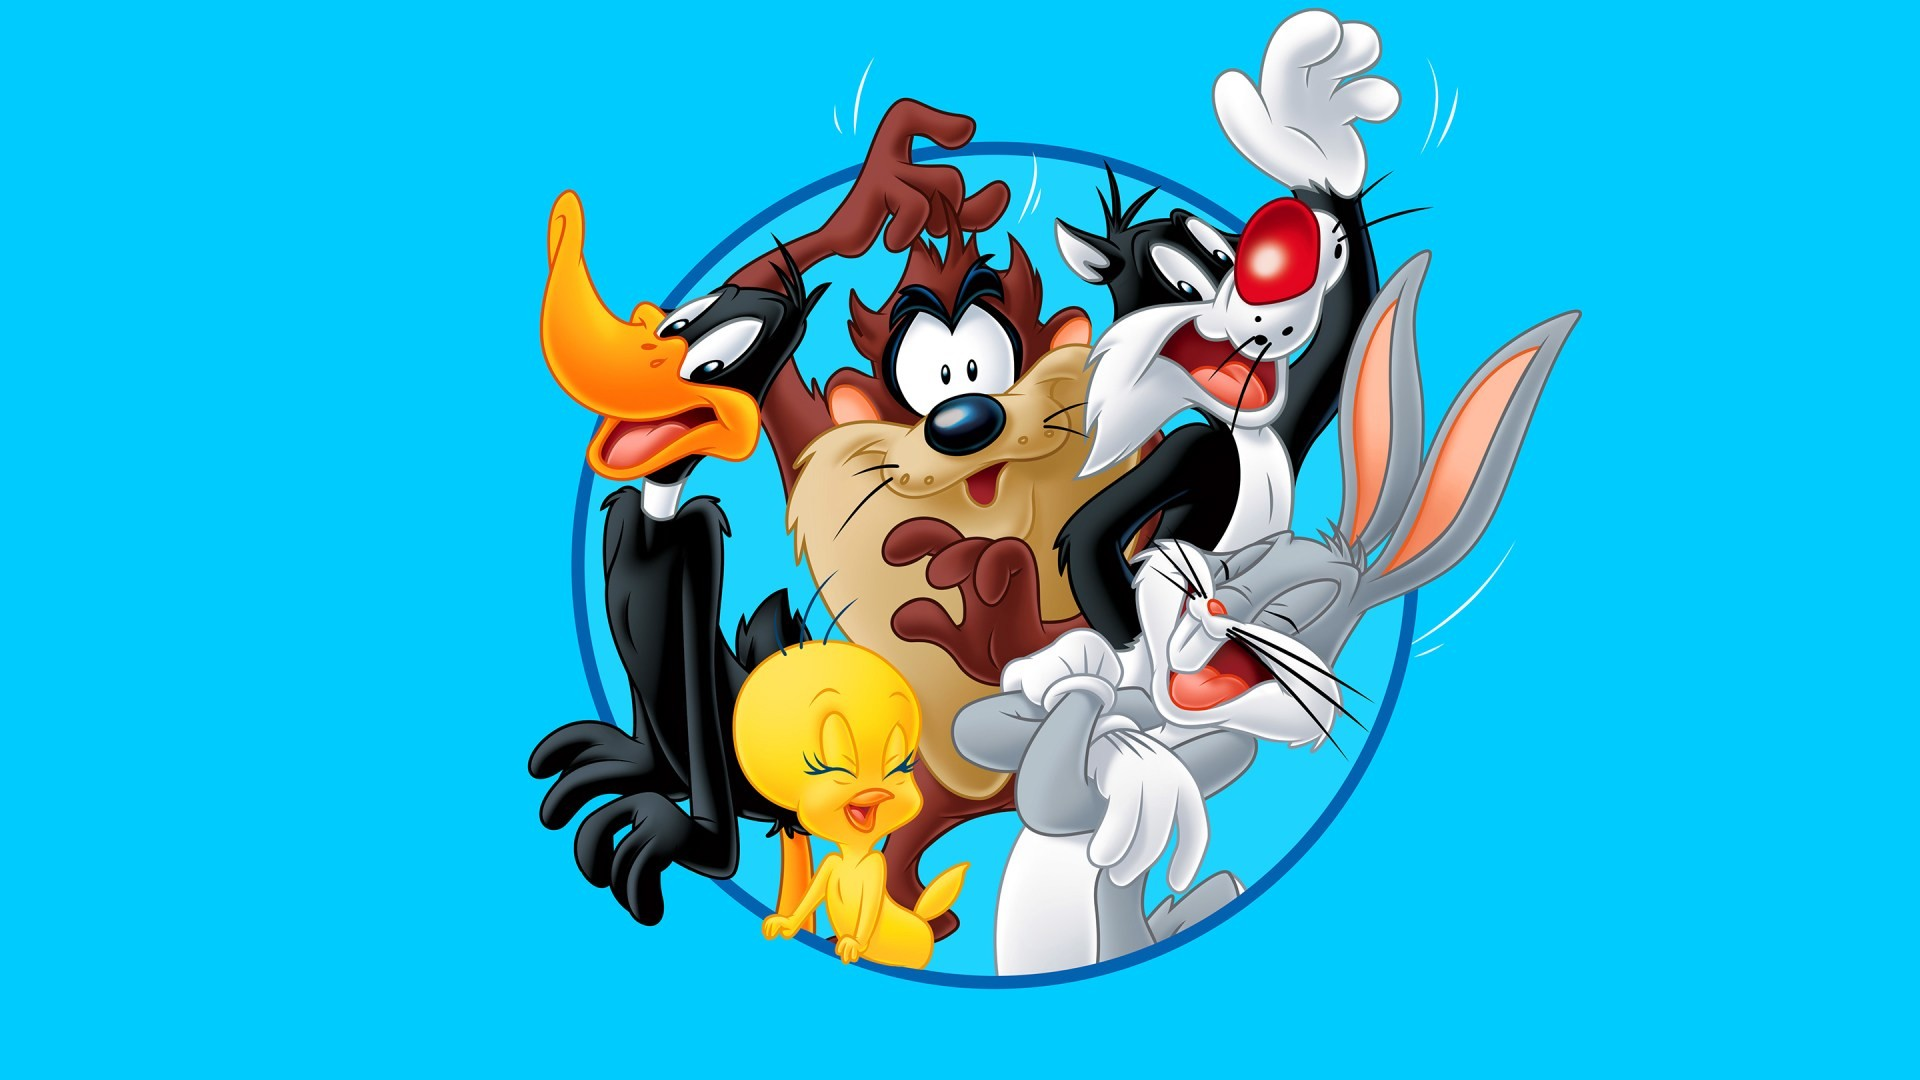 Res: 1920x1080, Looney Tunes Bugs Bunny 1080p HD Wallpaper Background